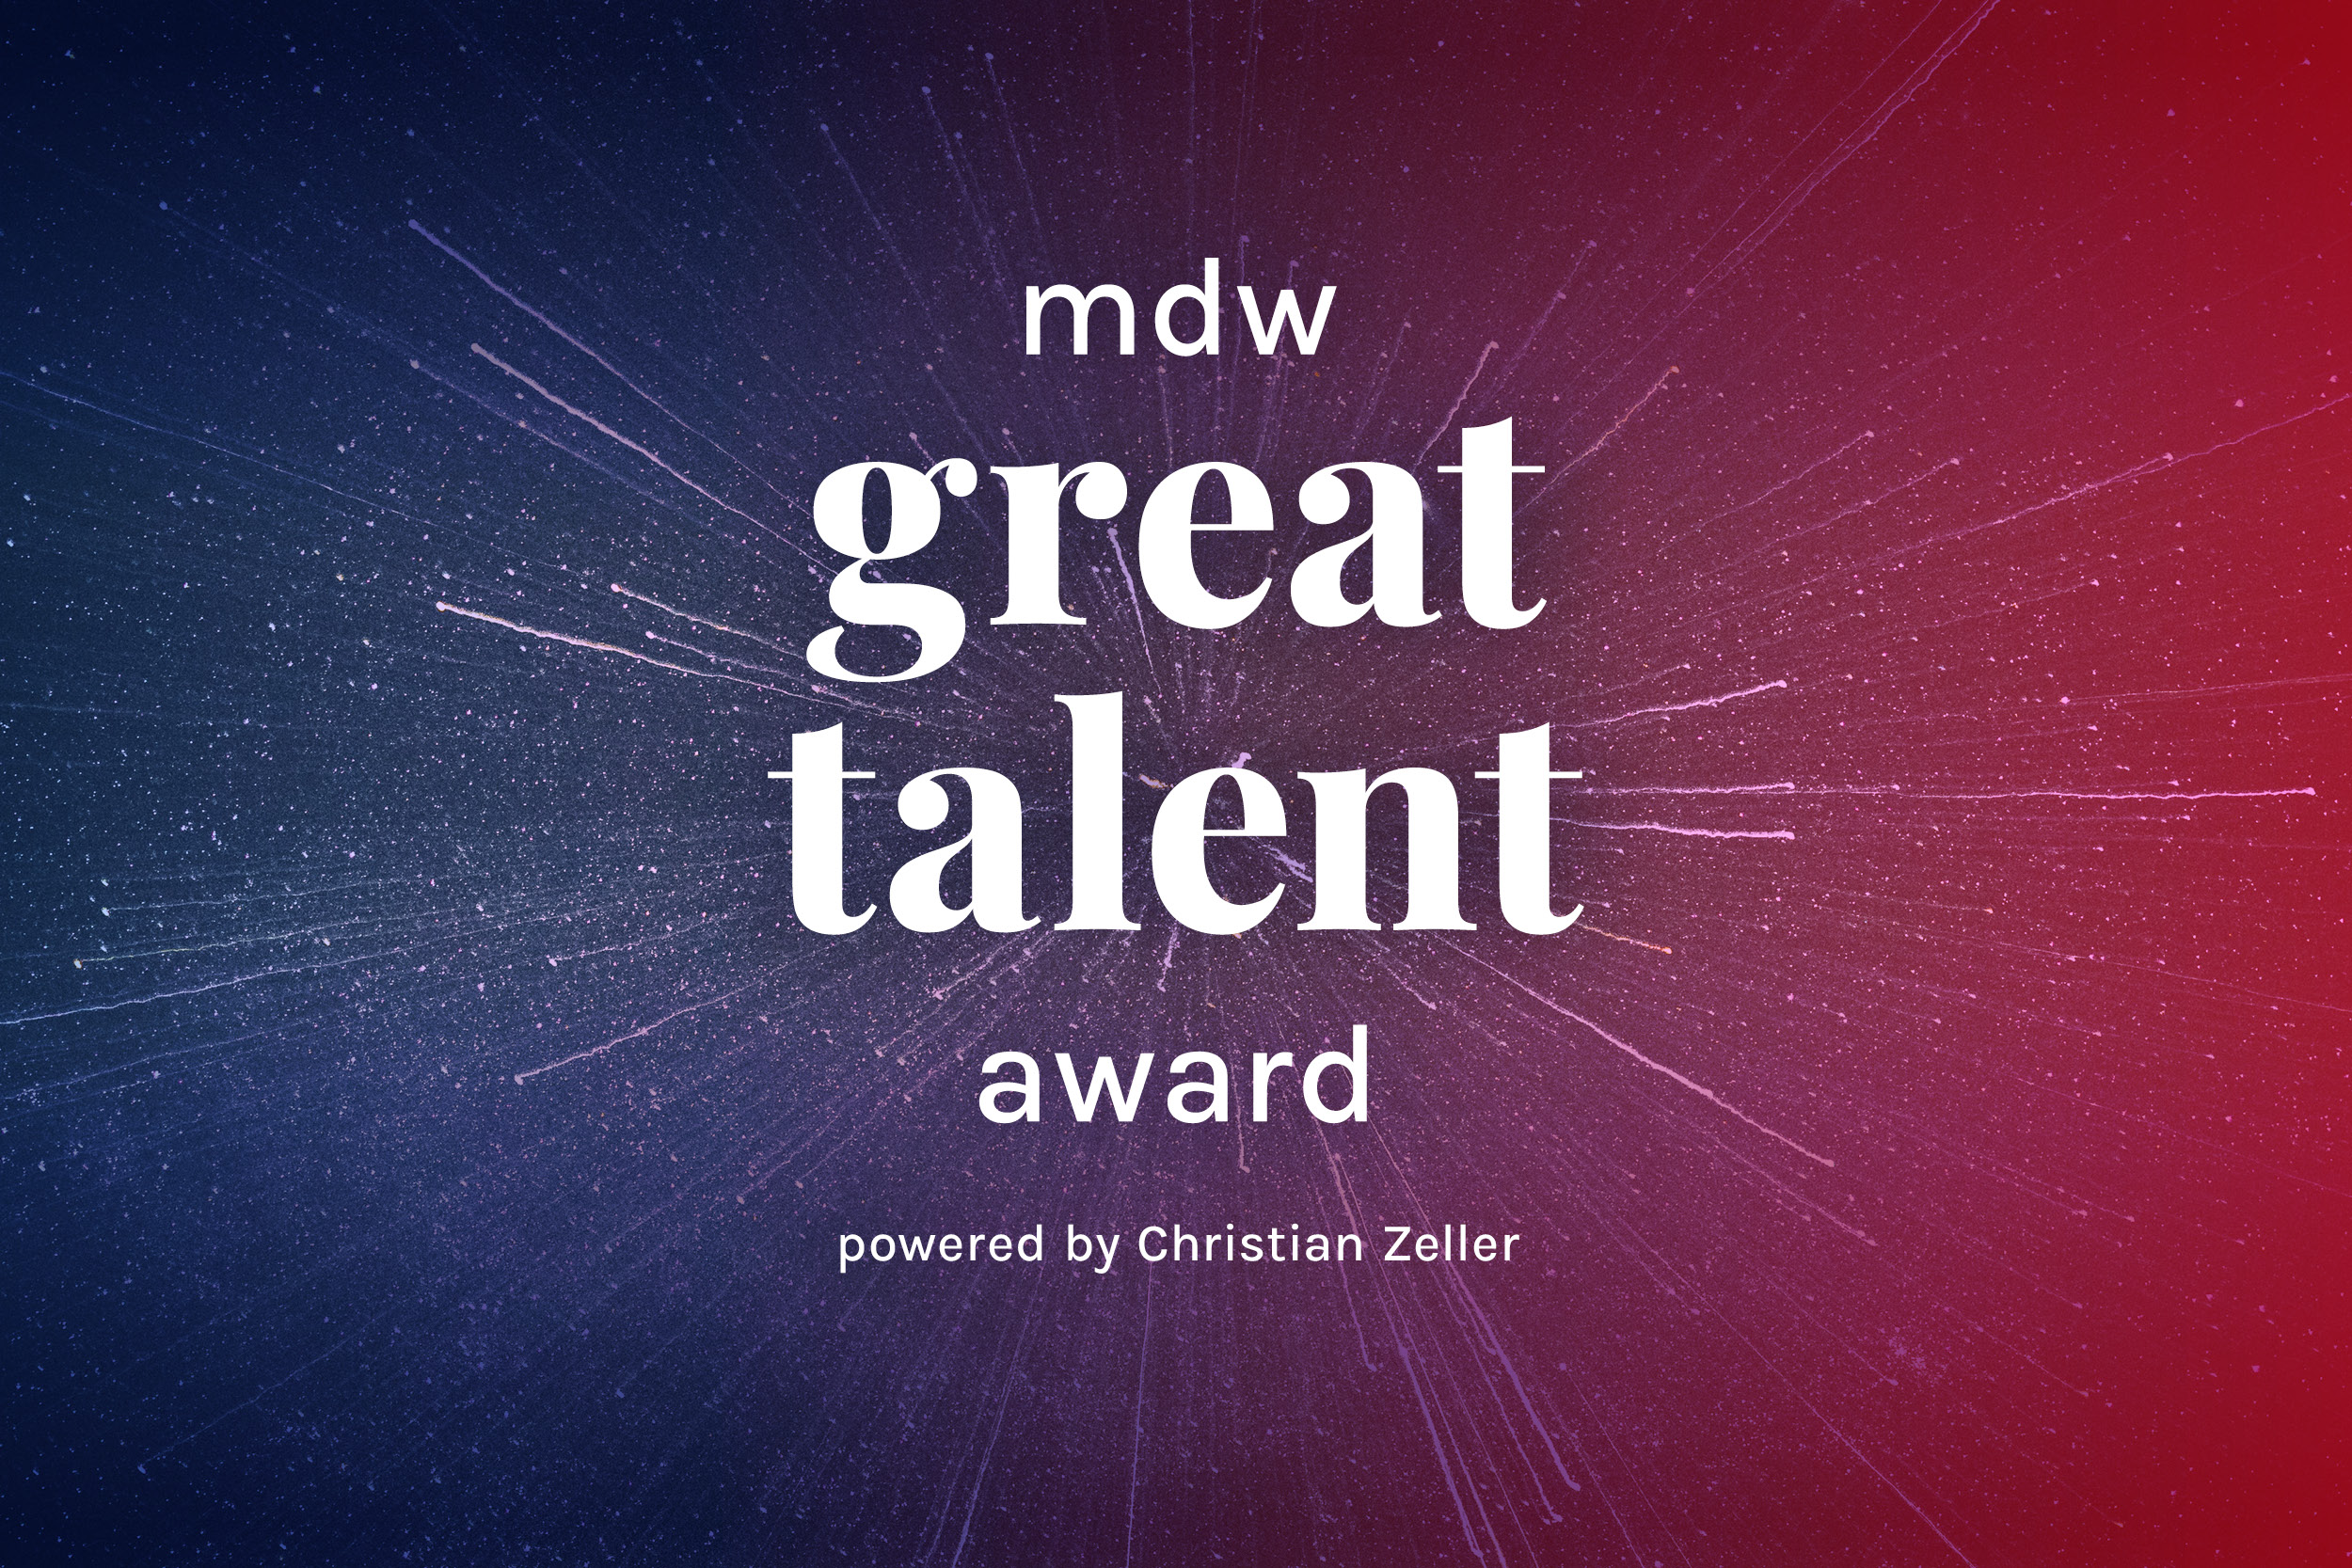 mdw great talent award